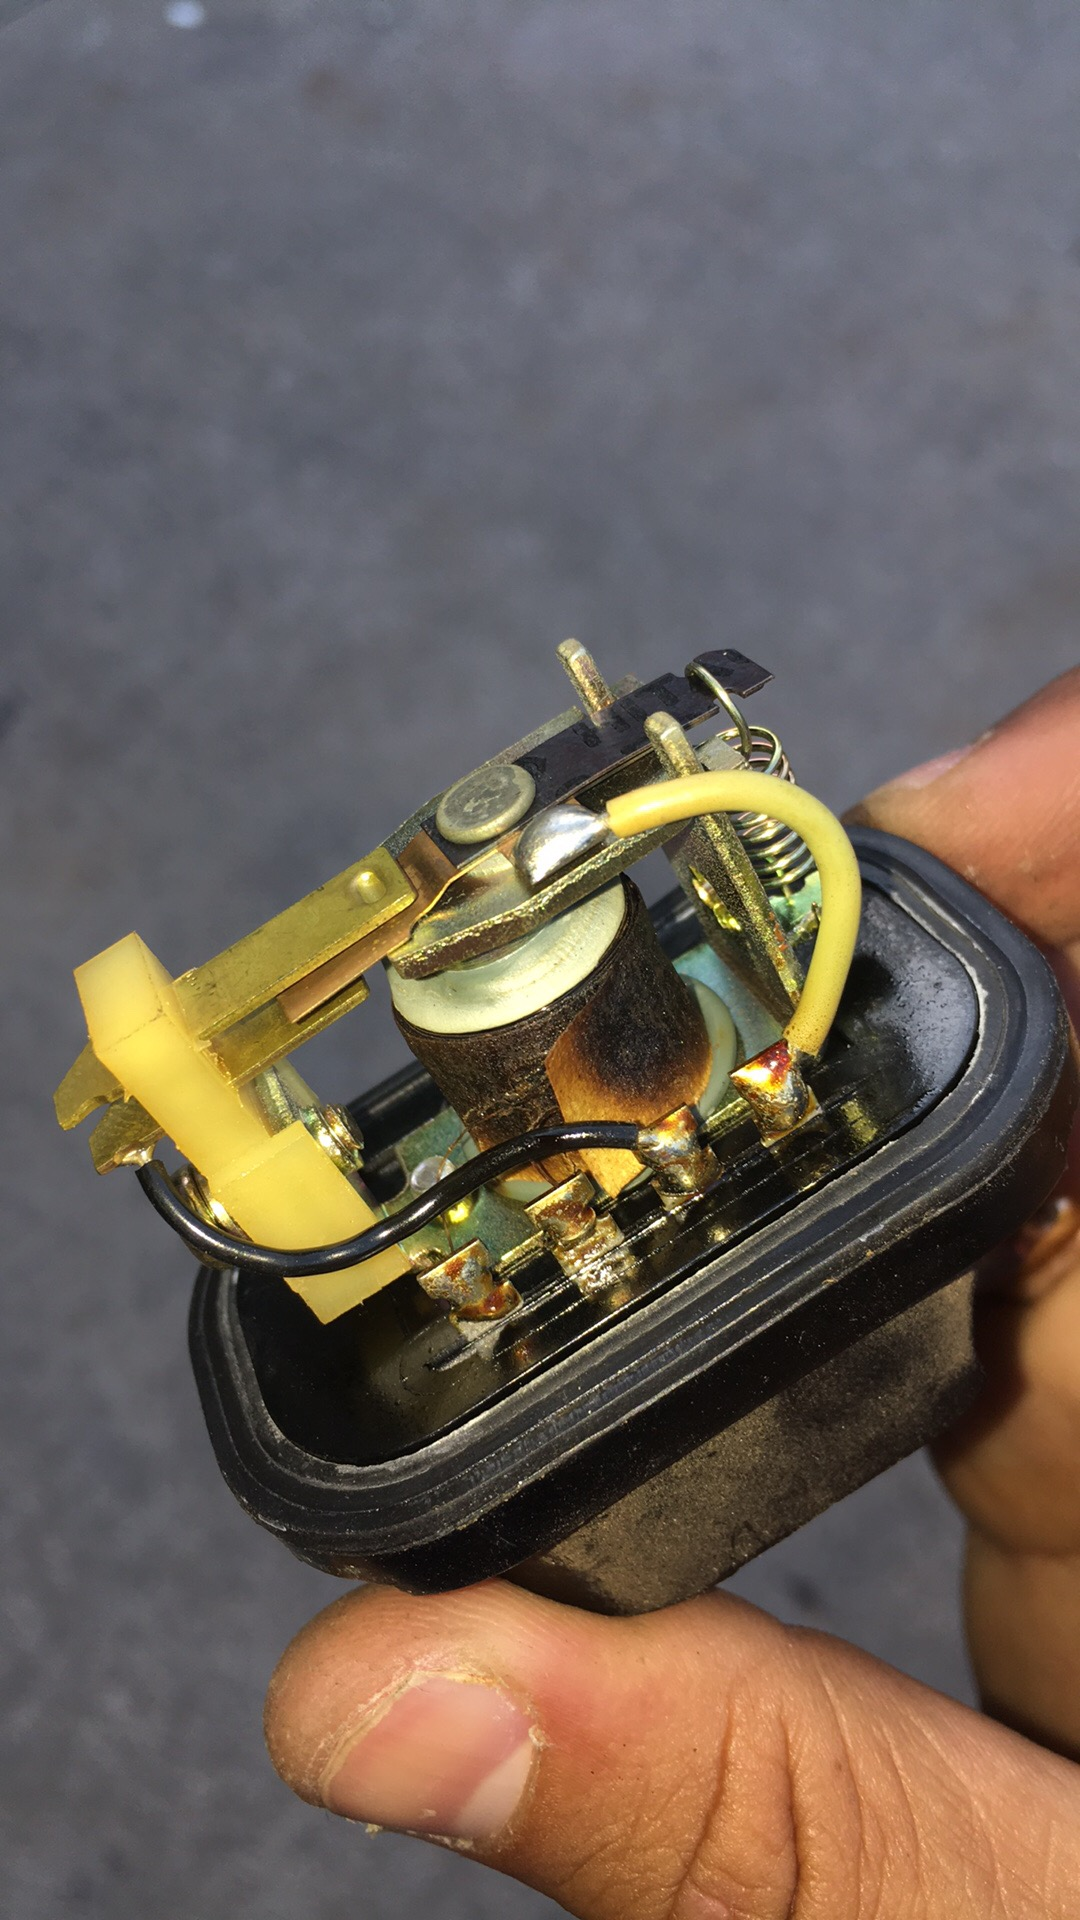 1974 260z Fuel Pump Relay Open S30 Z Discussions The Classic Datsun Also I Noticed That Previous Owner Was Messing With These Because Black W White Stripe Wires Were Spliced Together